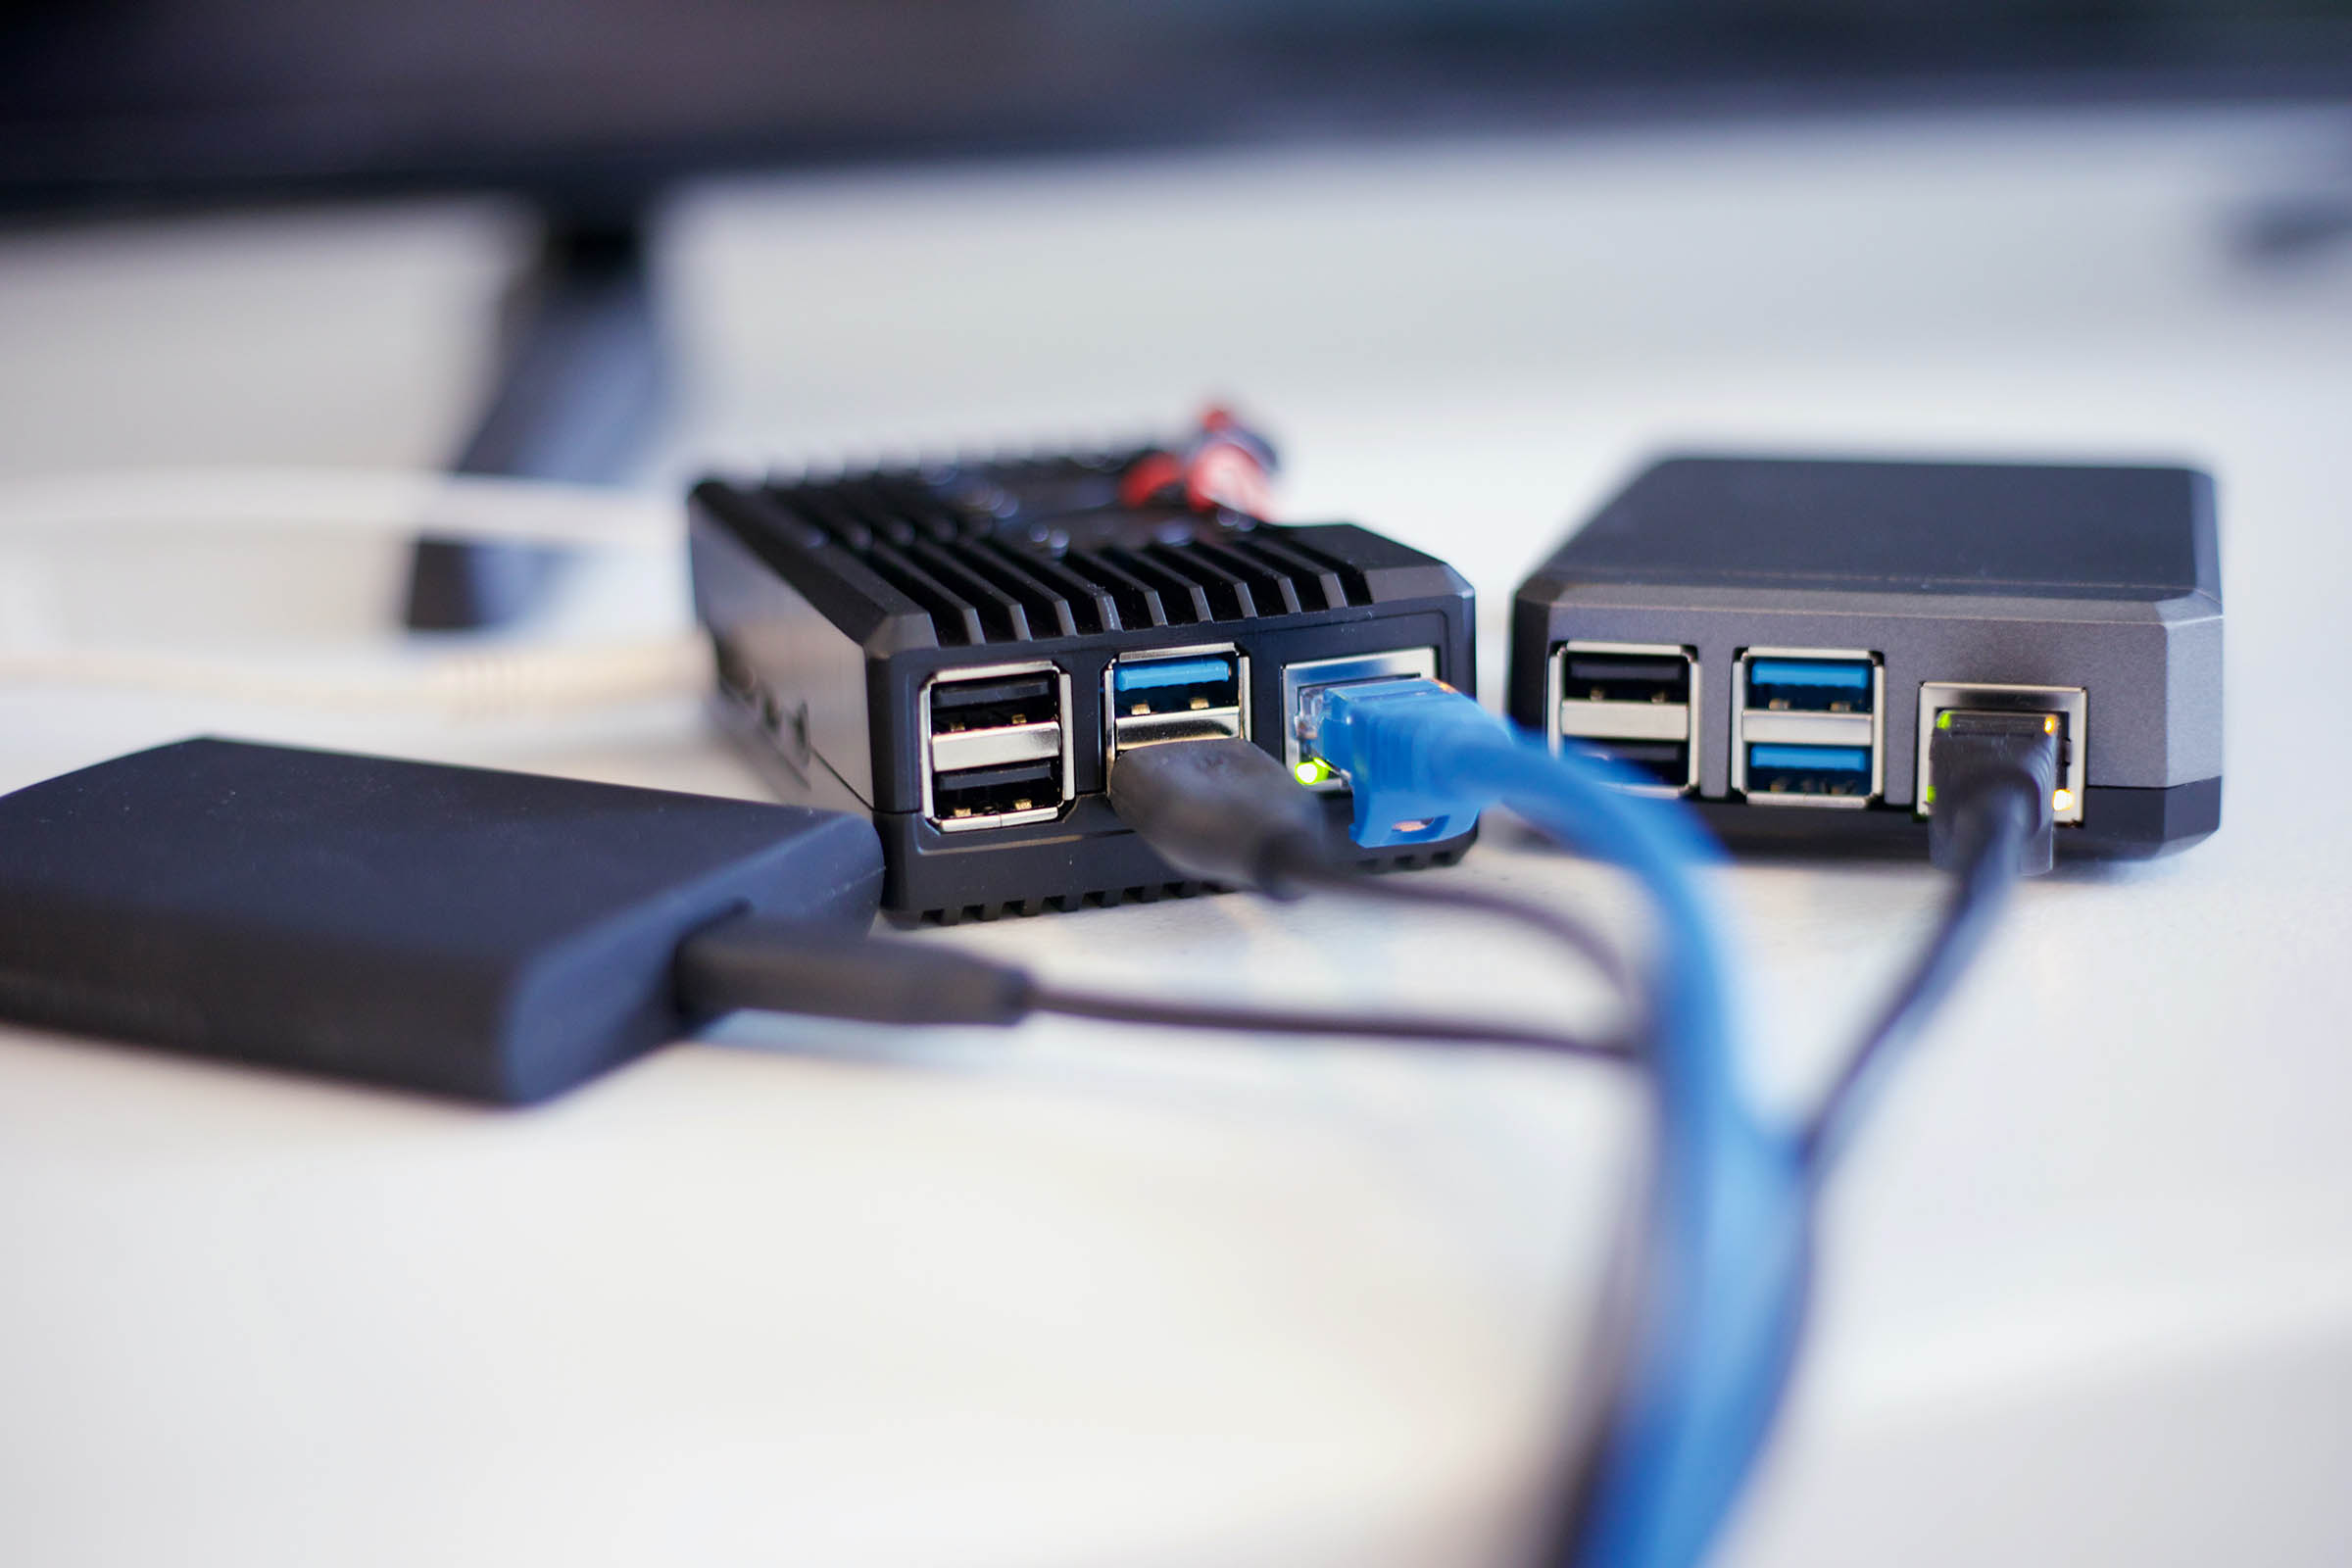 usbs and ethernet cables plugged into devices